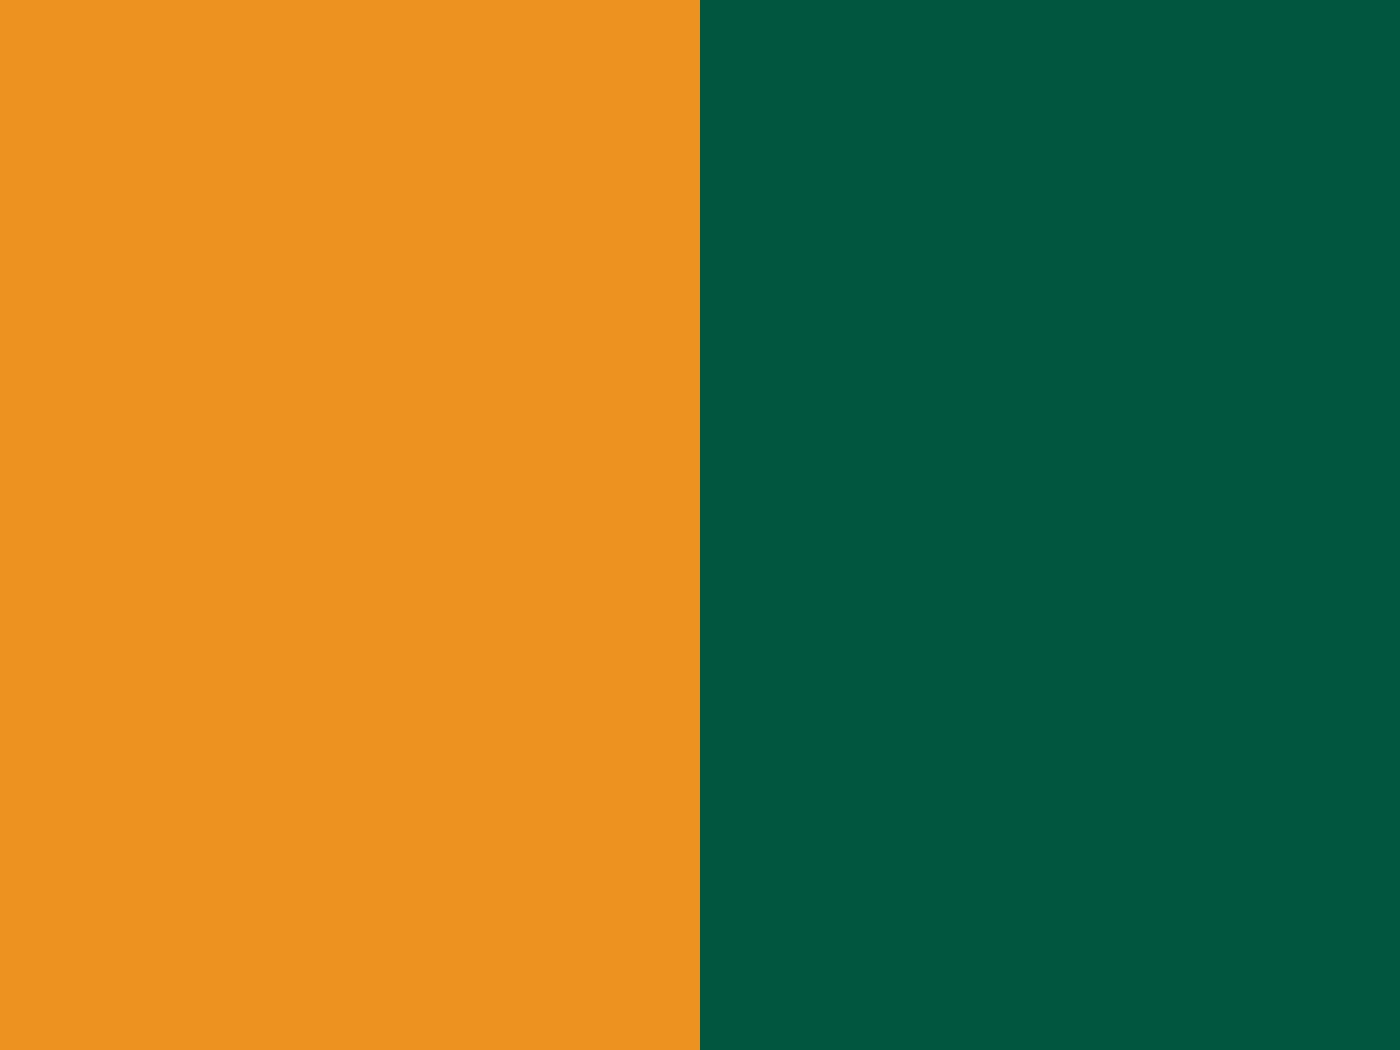 1400x1050 Carrot Orange and Castleton Green Two Color Background 1400x1050